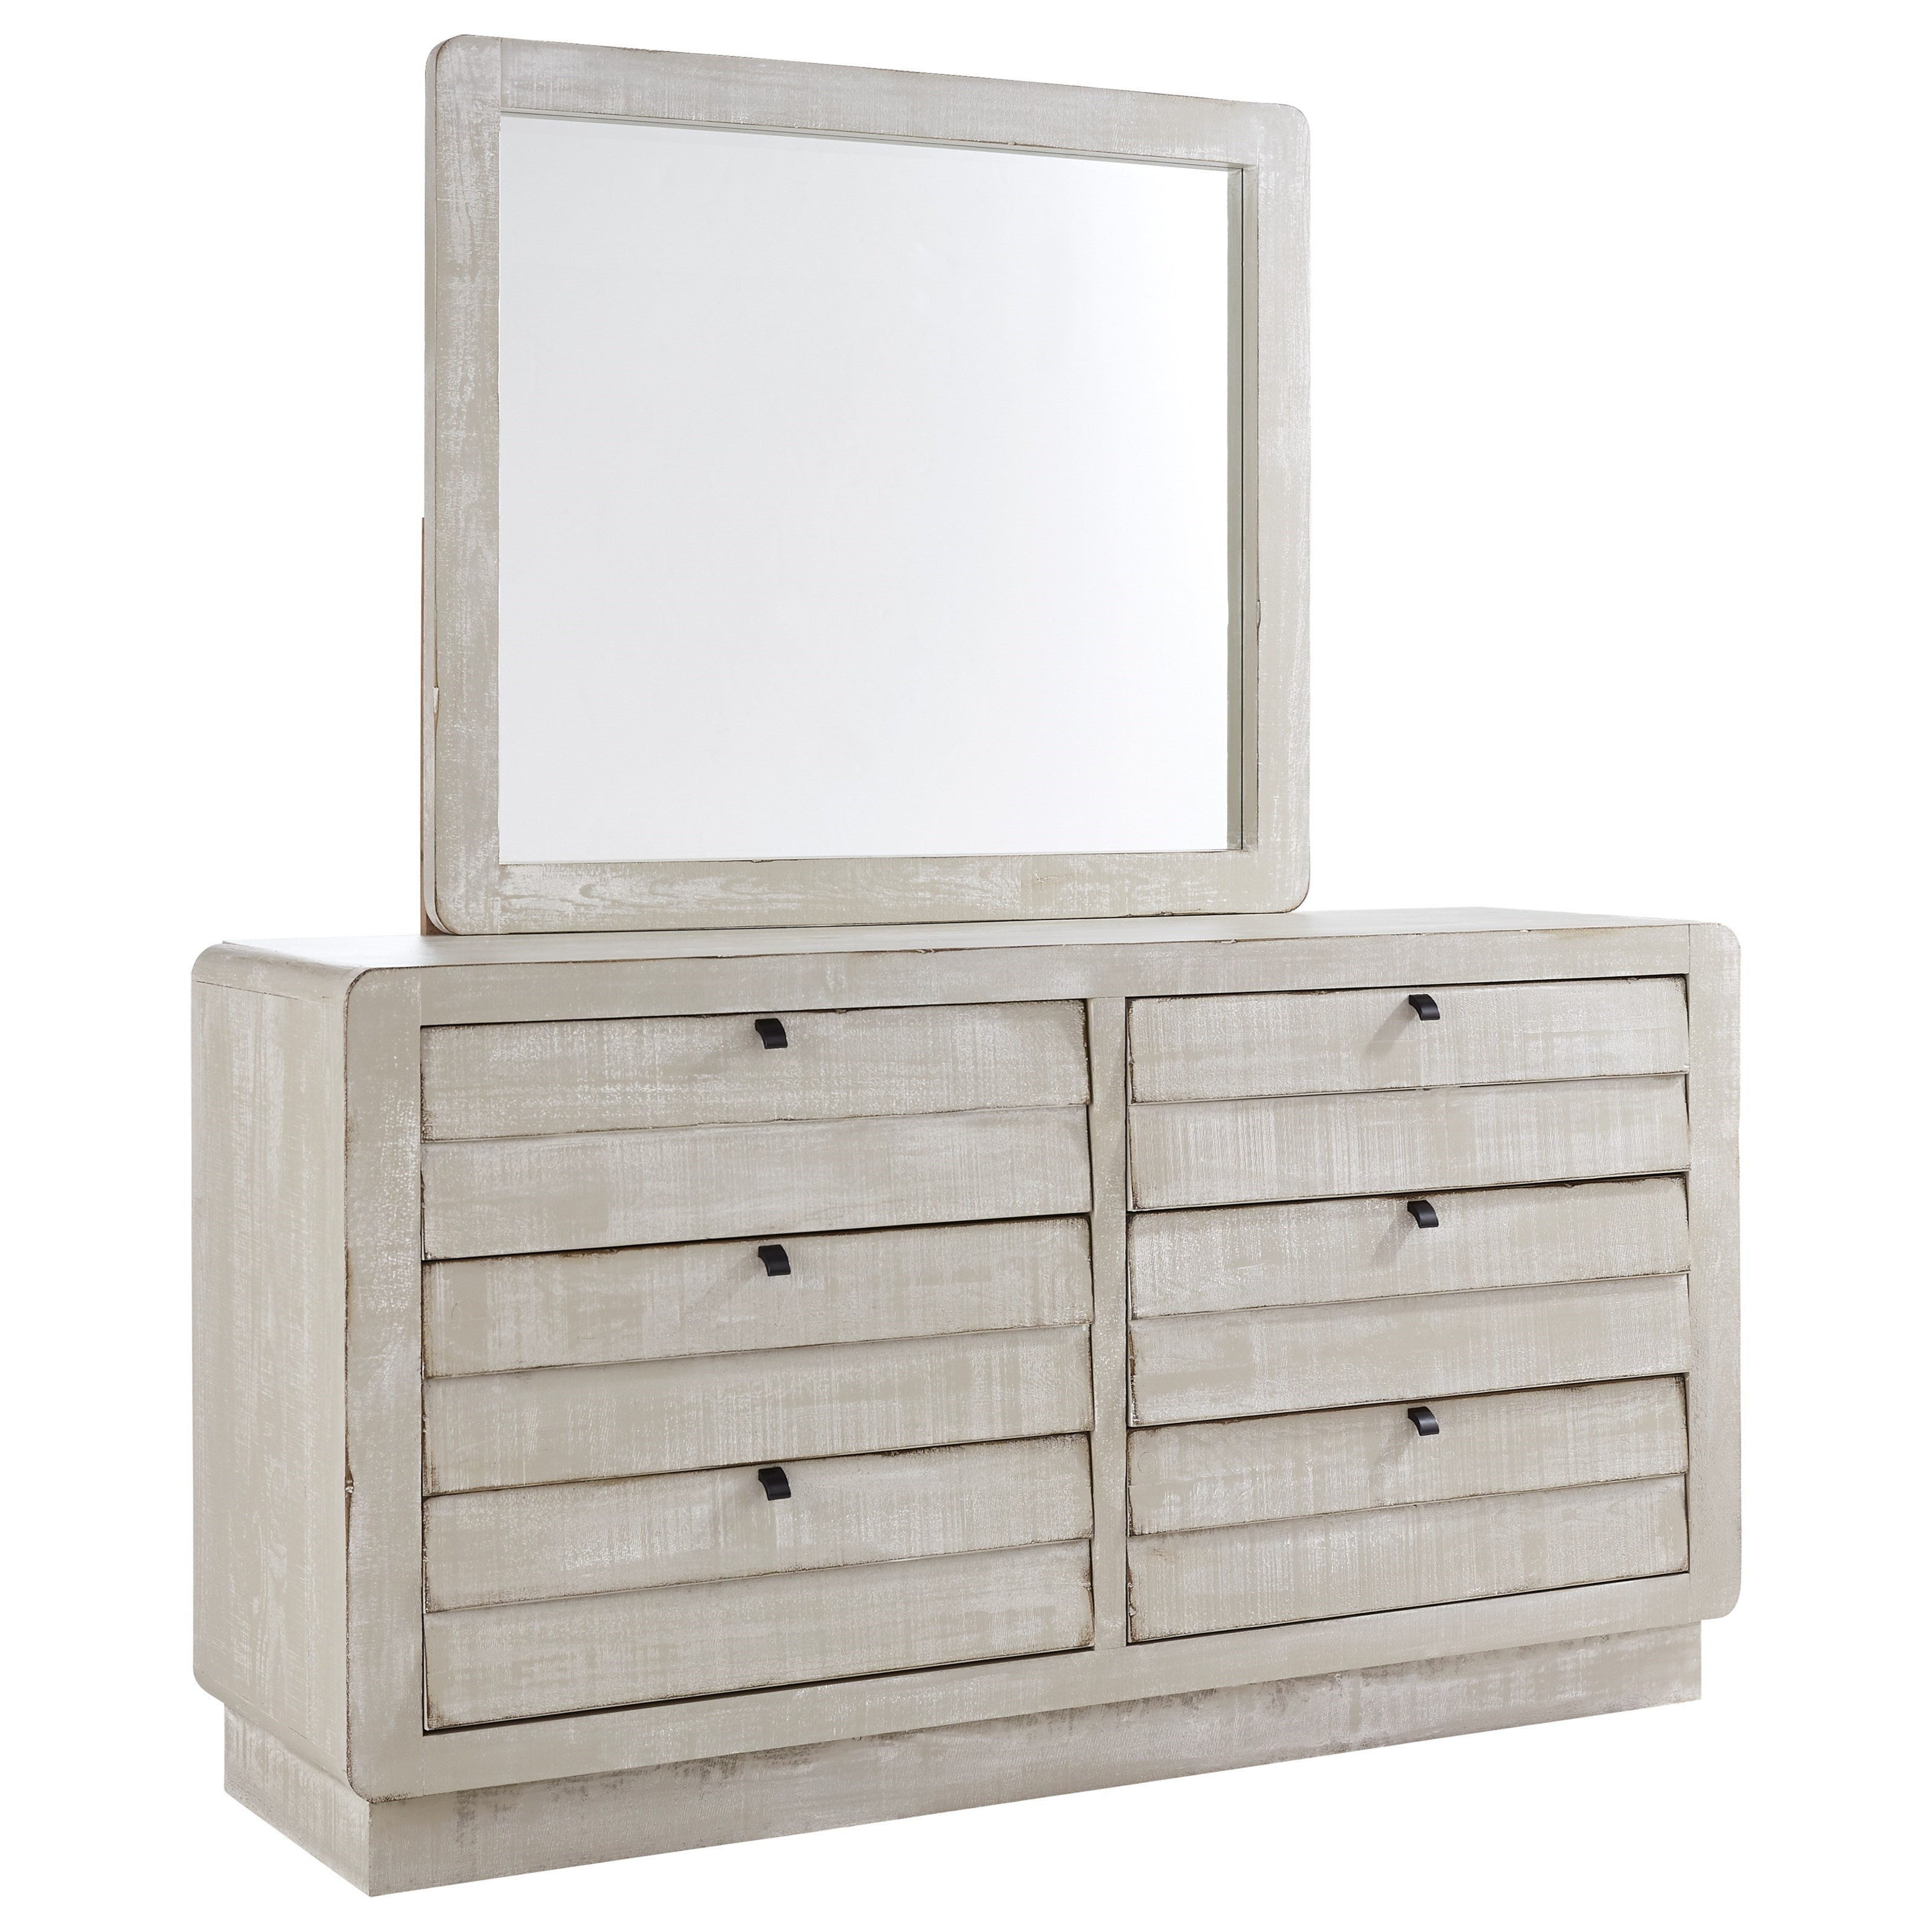 Bliss Gray Chalk Dresser and Mirror Combination by Progressive Furniture at Bullard Furniture